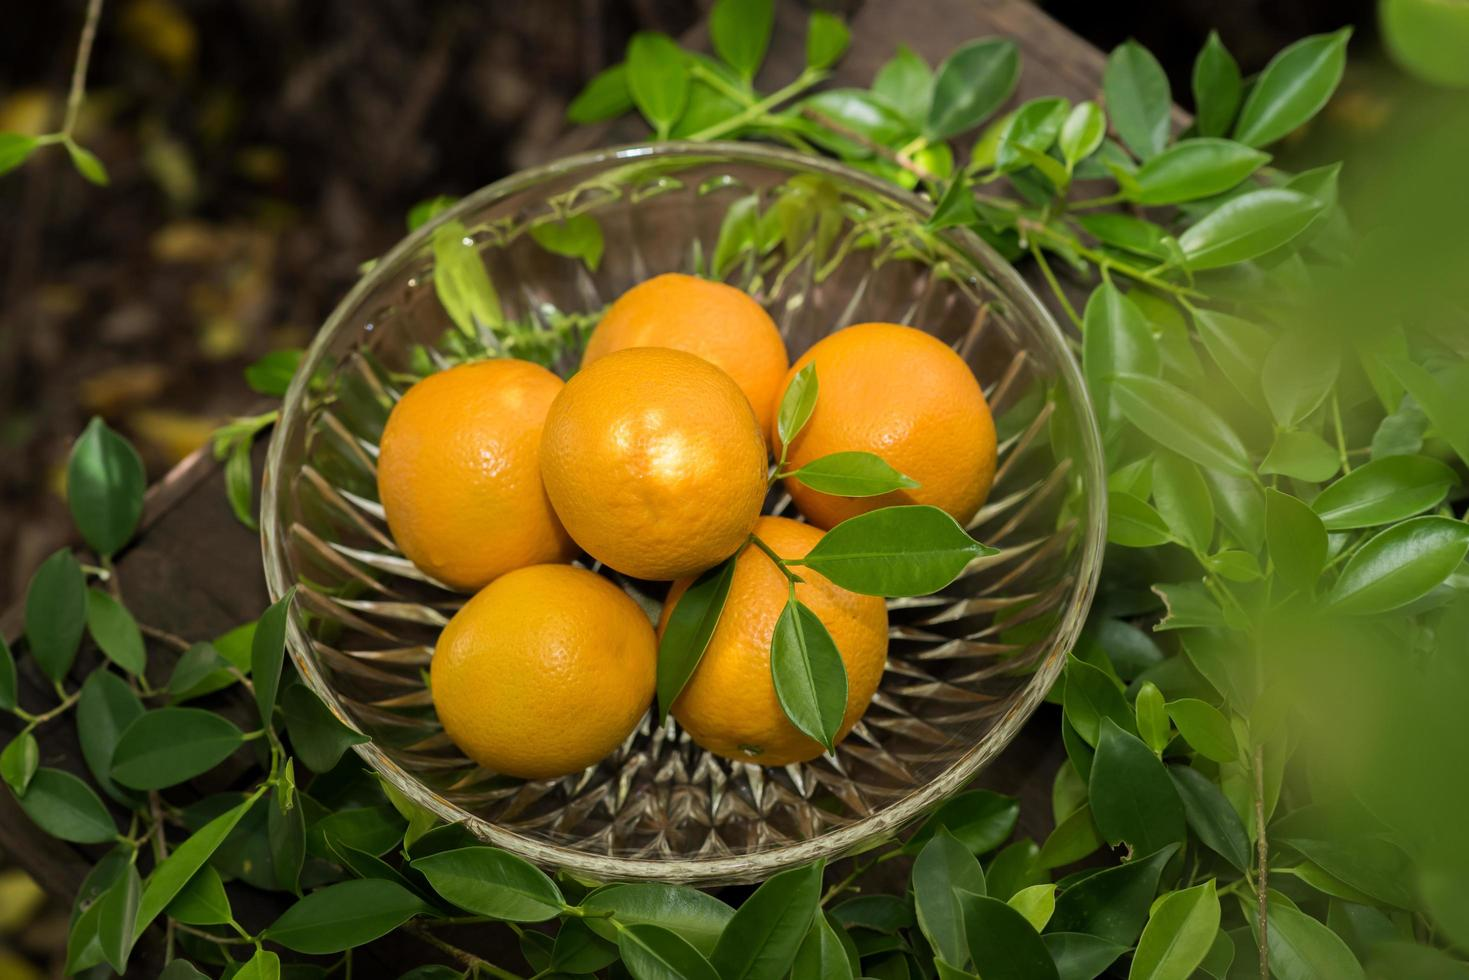 A basket of fresh oranges in nature photo